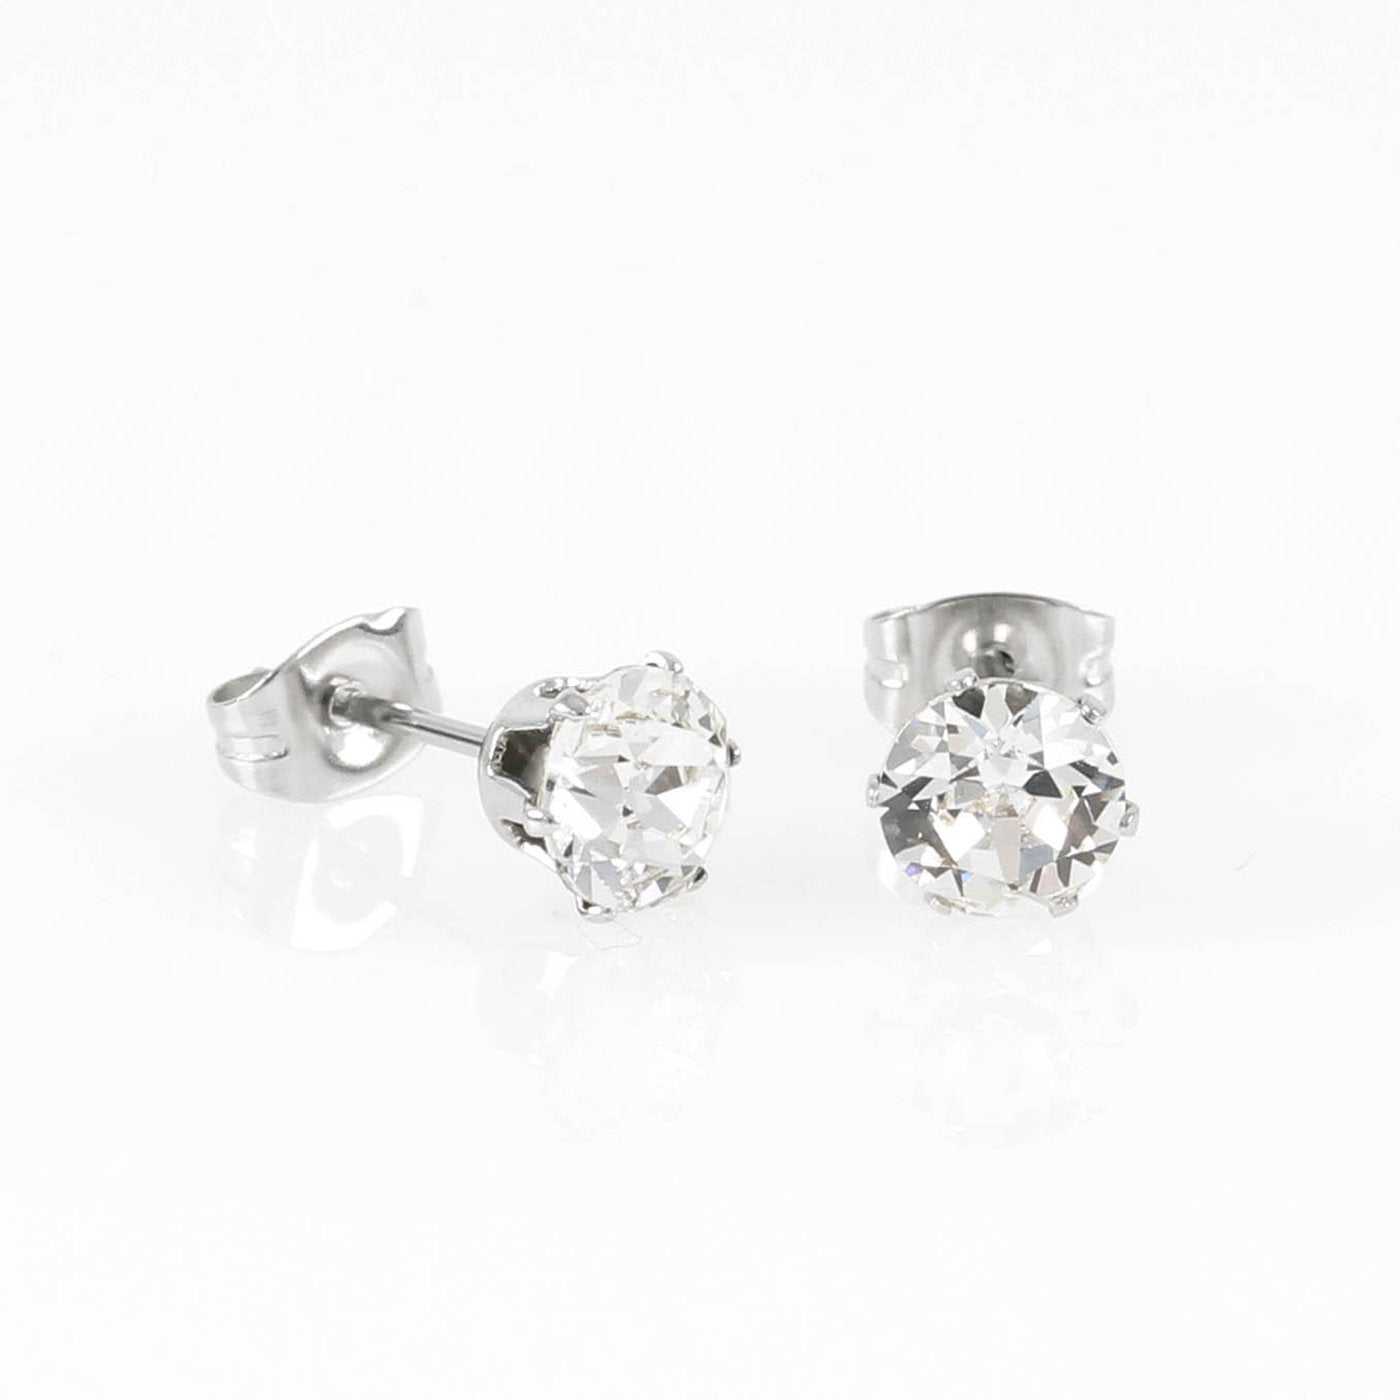 Silver Swarovski Hypoallergenic Earrings Stacking Set